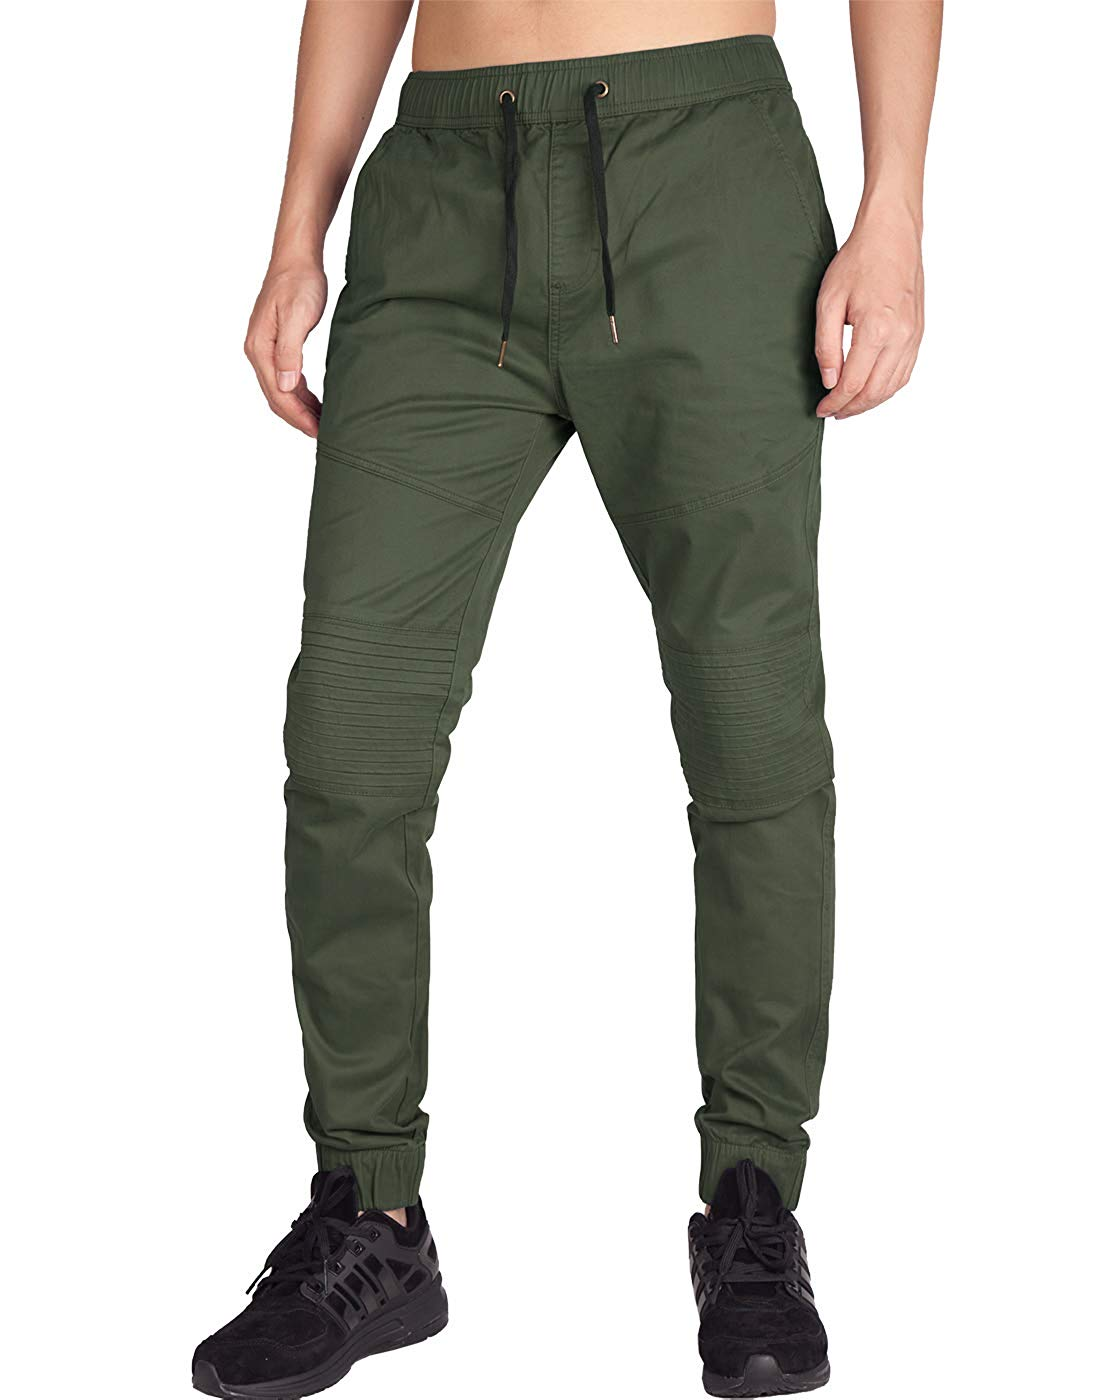 Wearing On Jogger pants